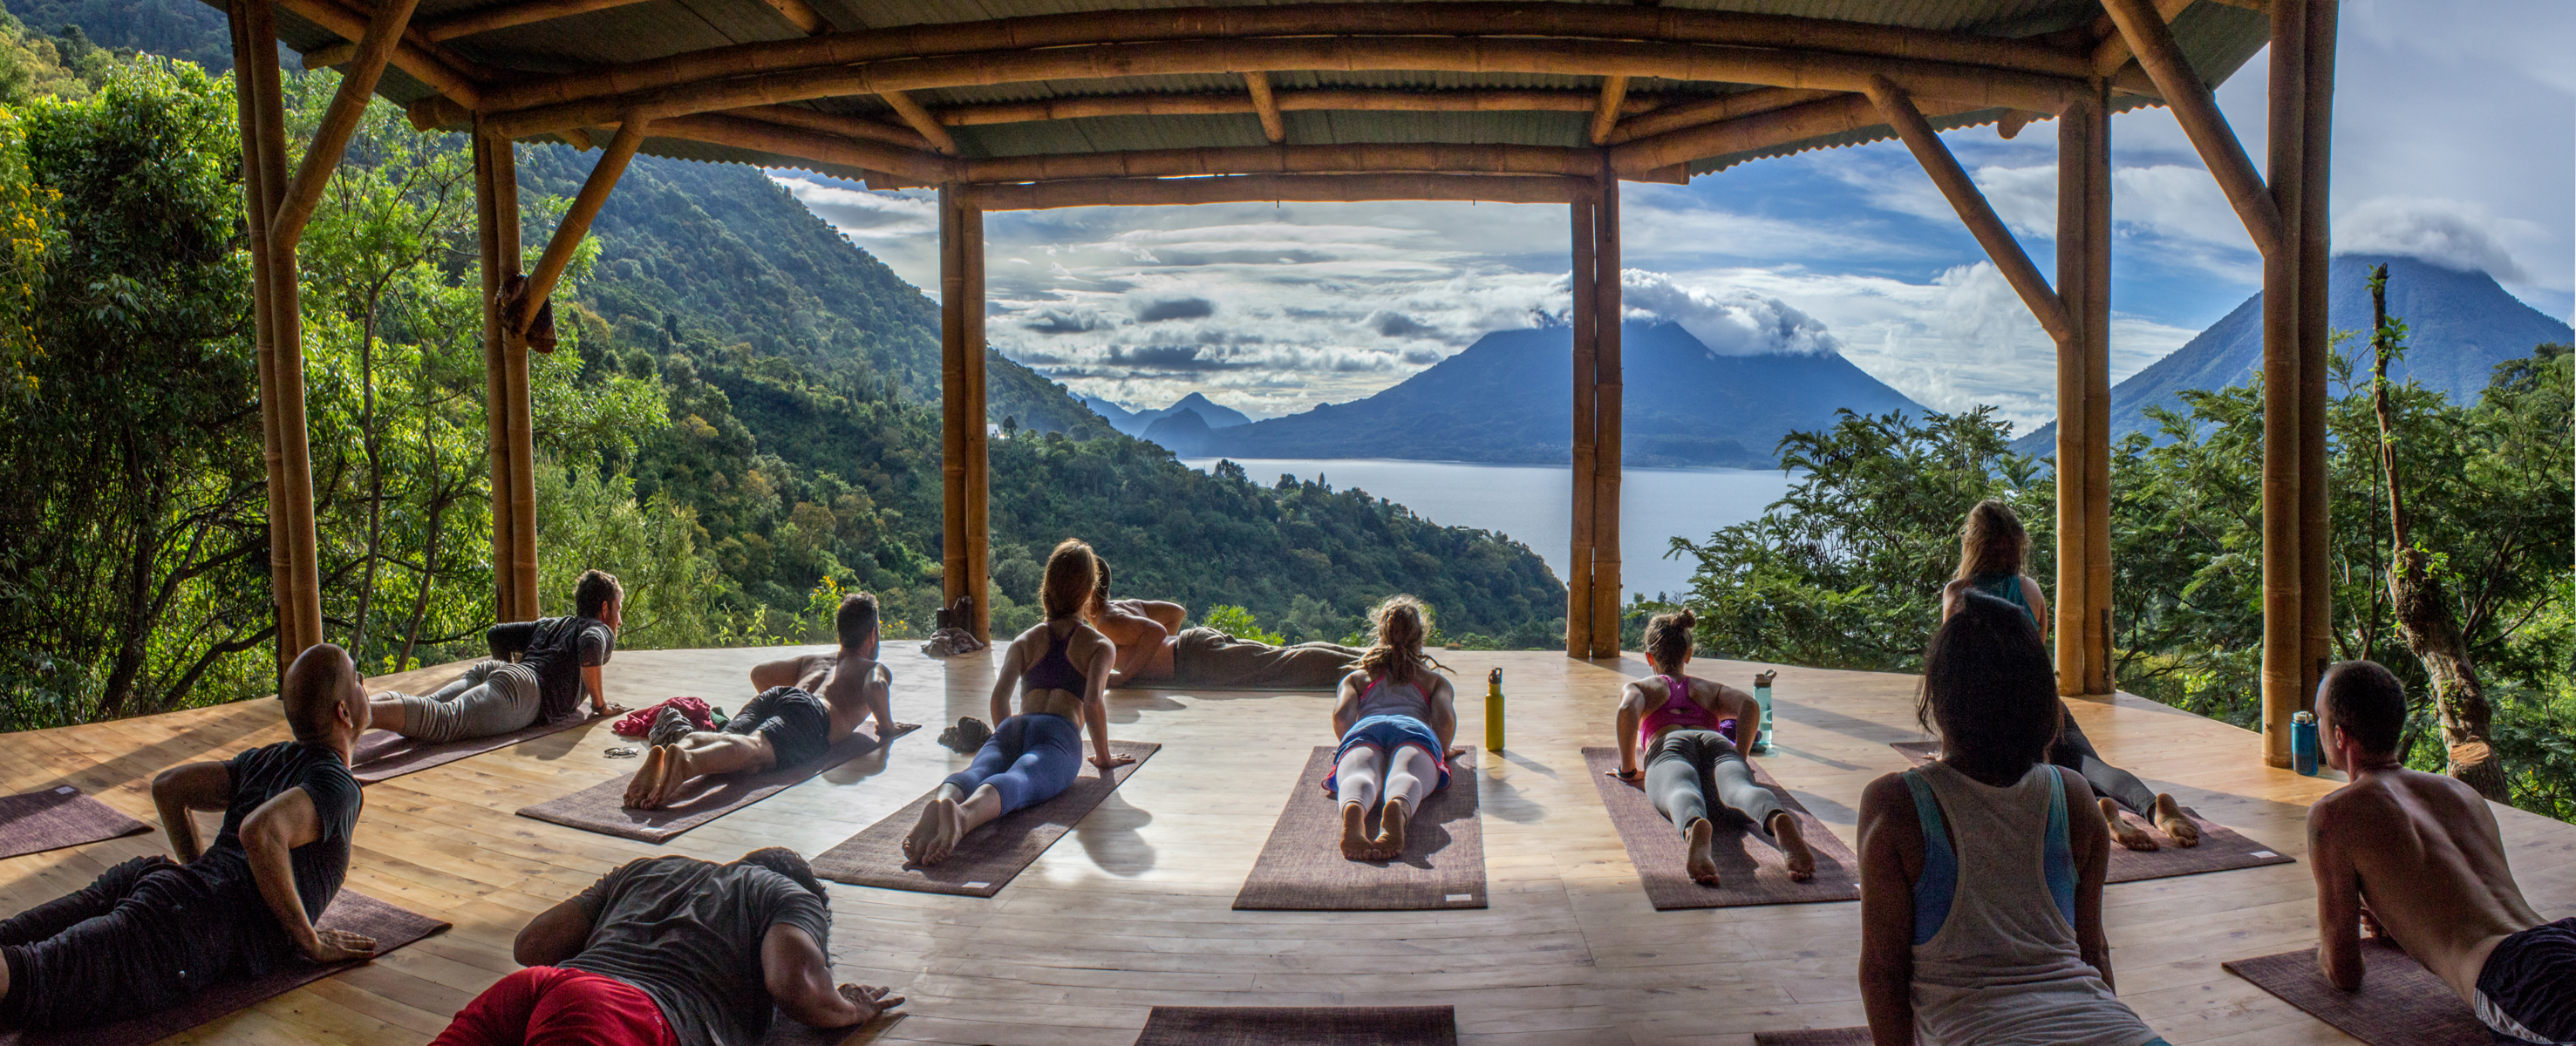 Yoga Retreats Travel Site Positions You With The Right One Cnn Travel